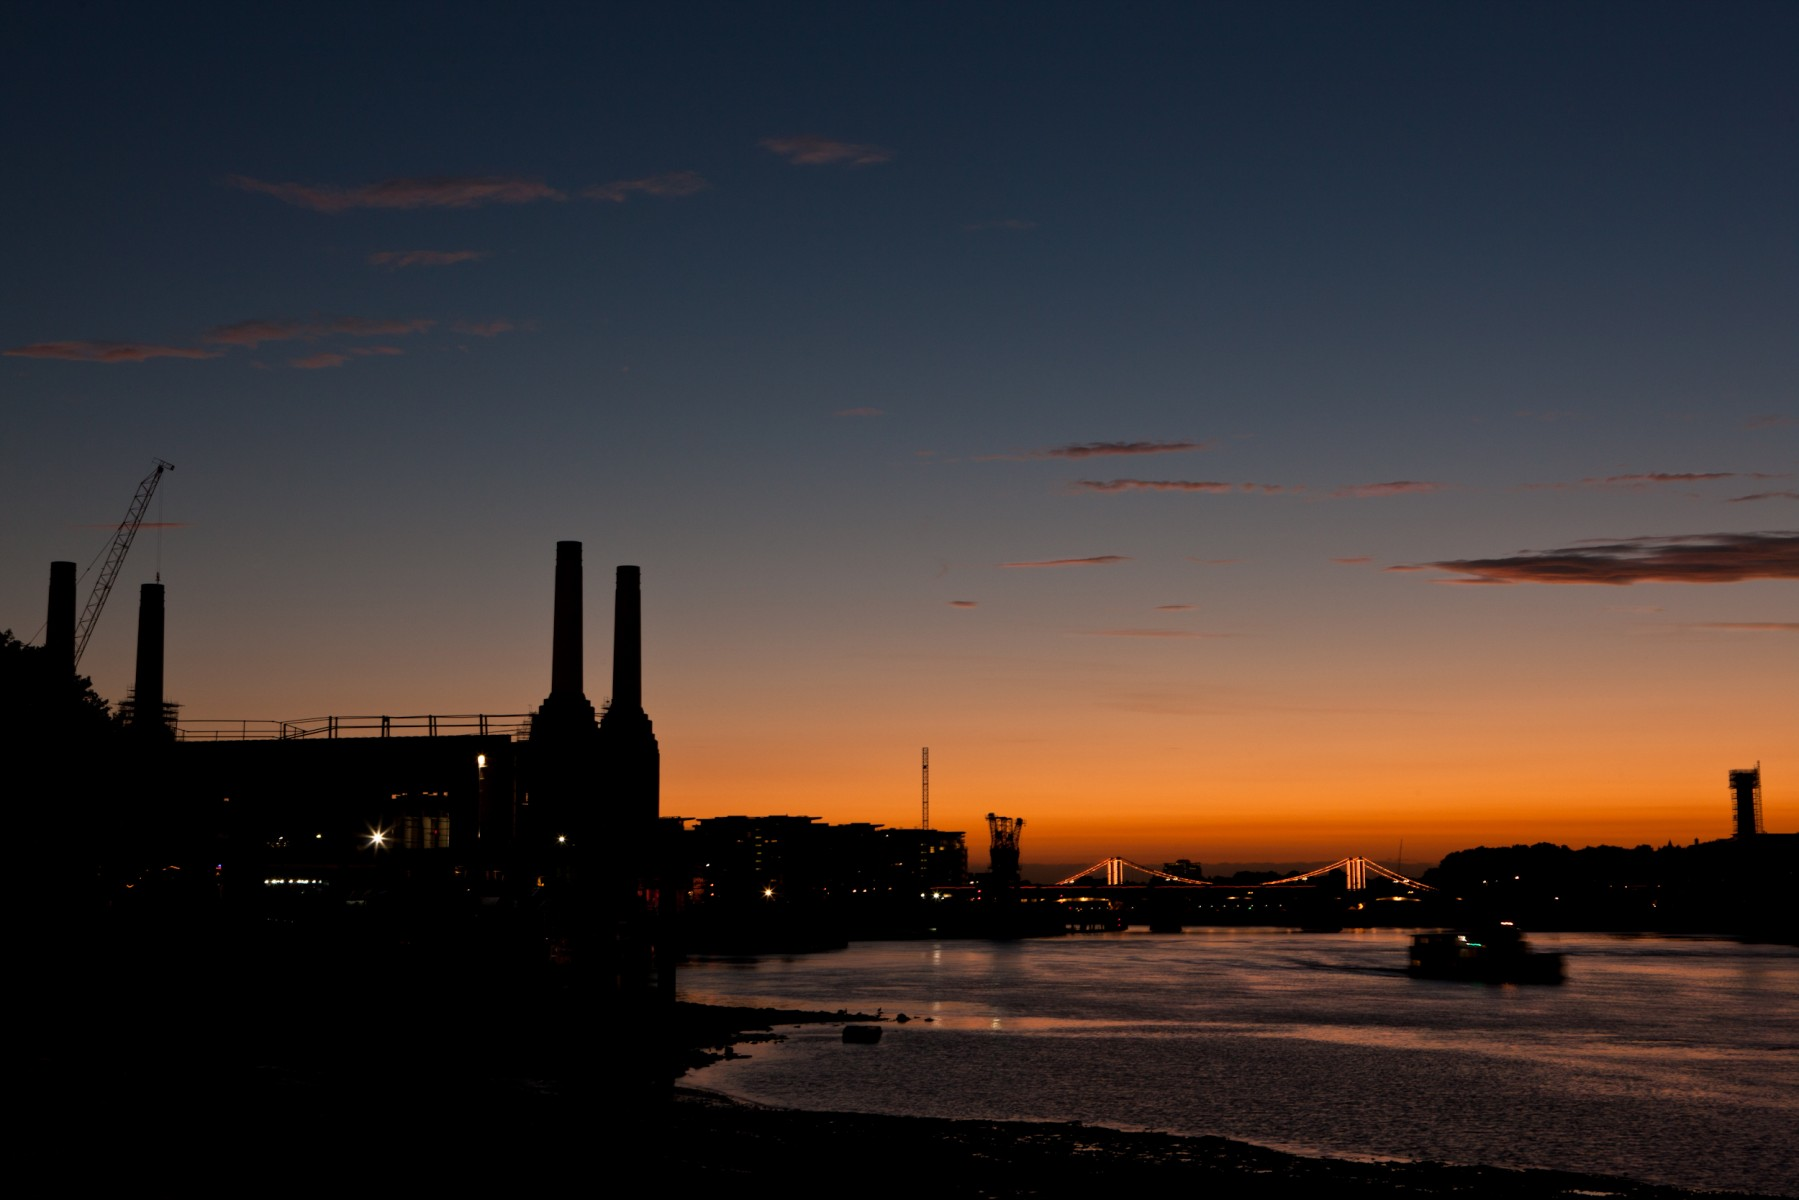 Silhouette of Battersea Power Station